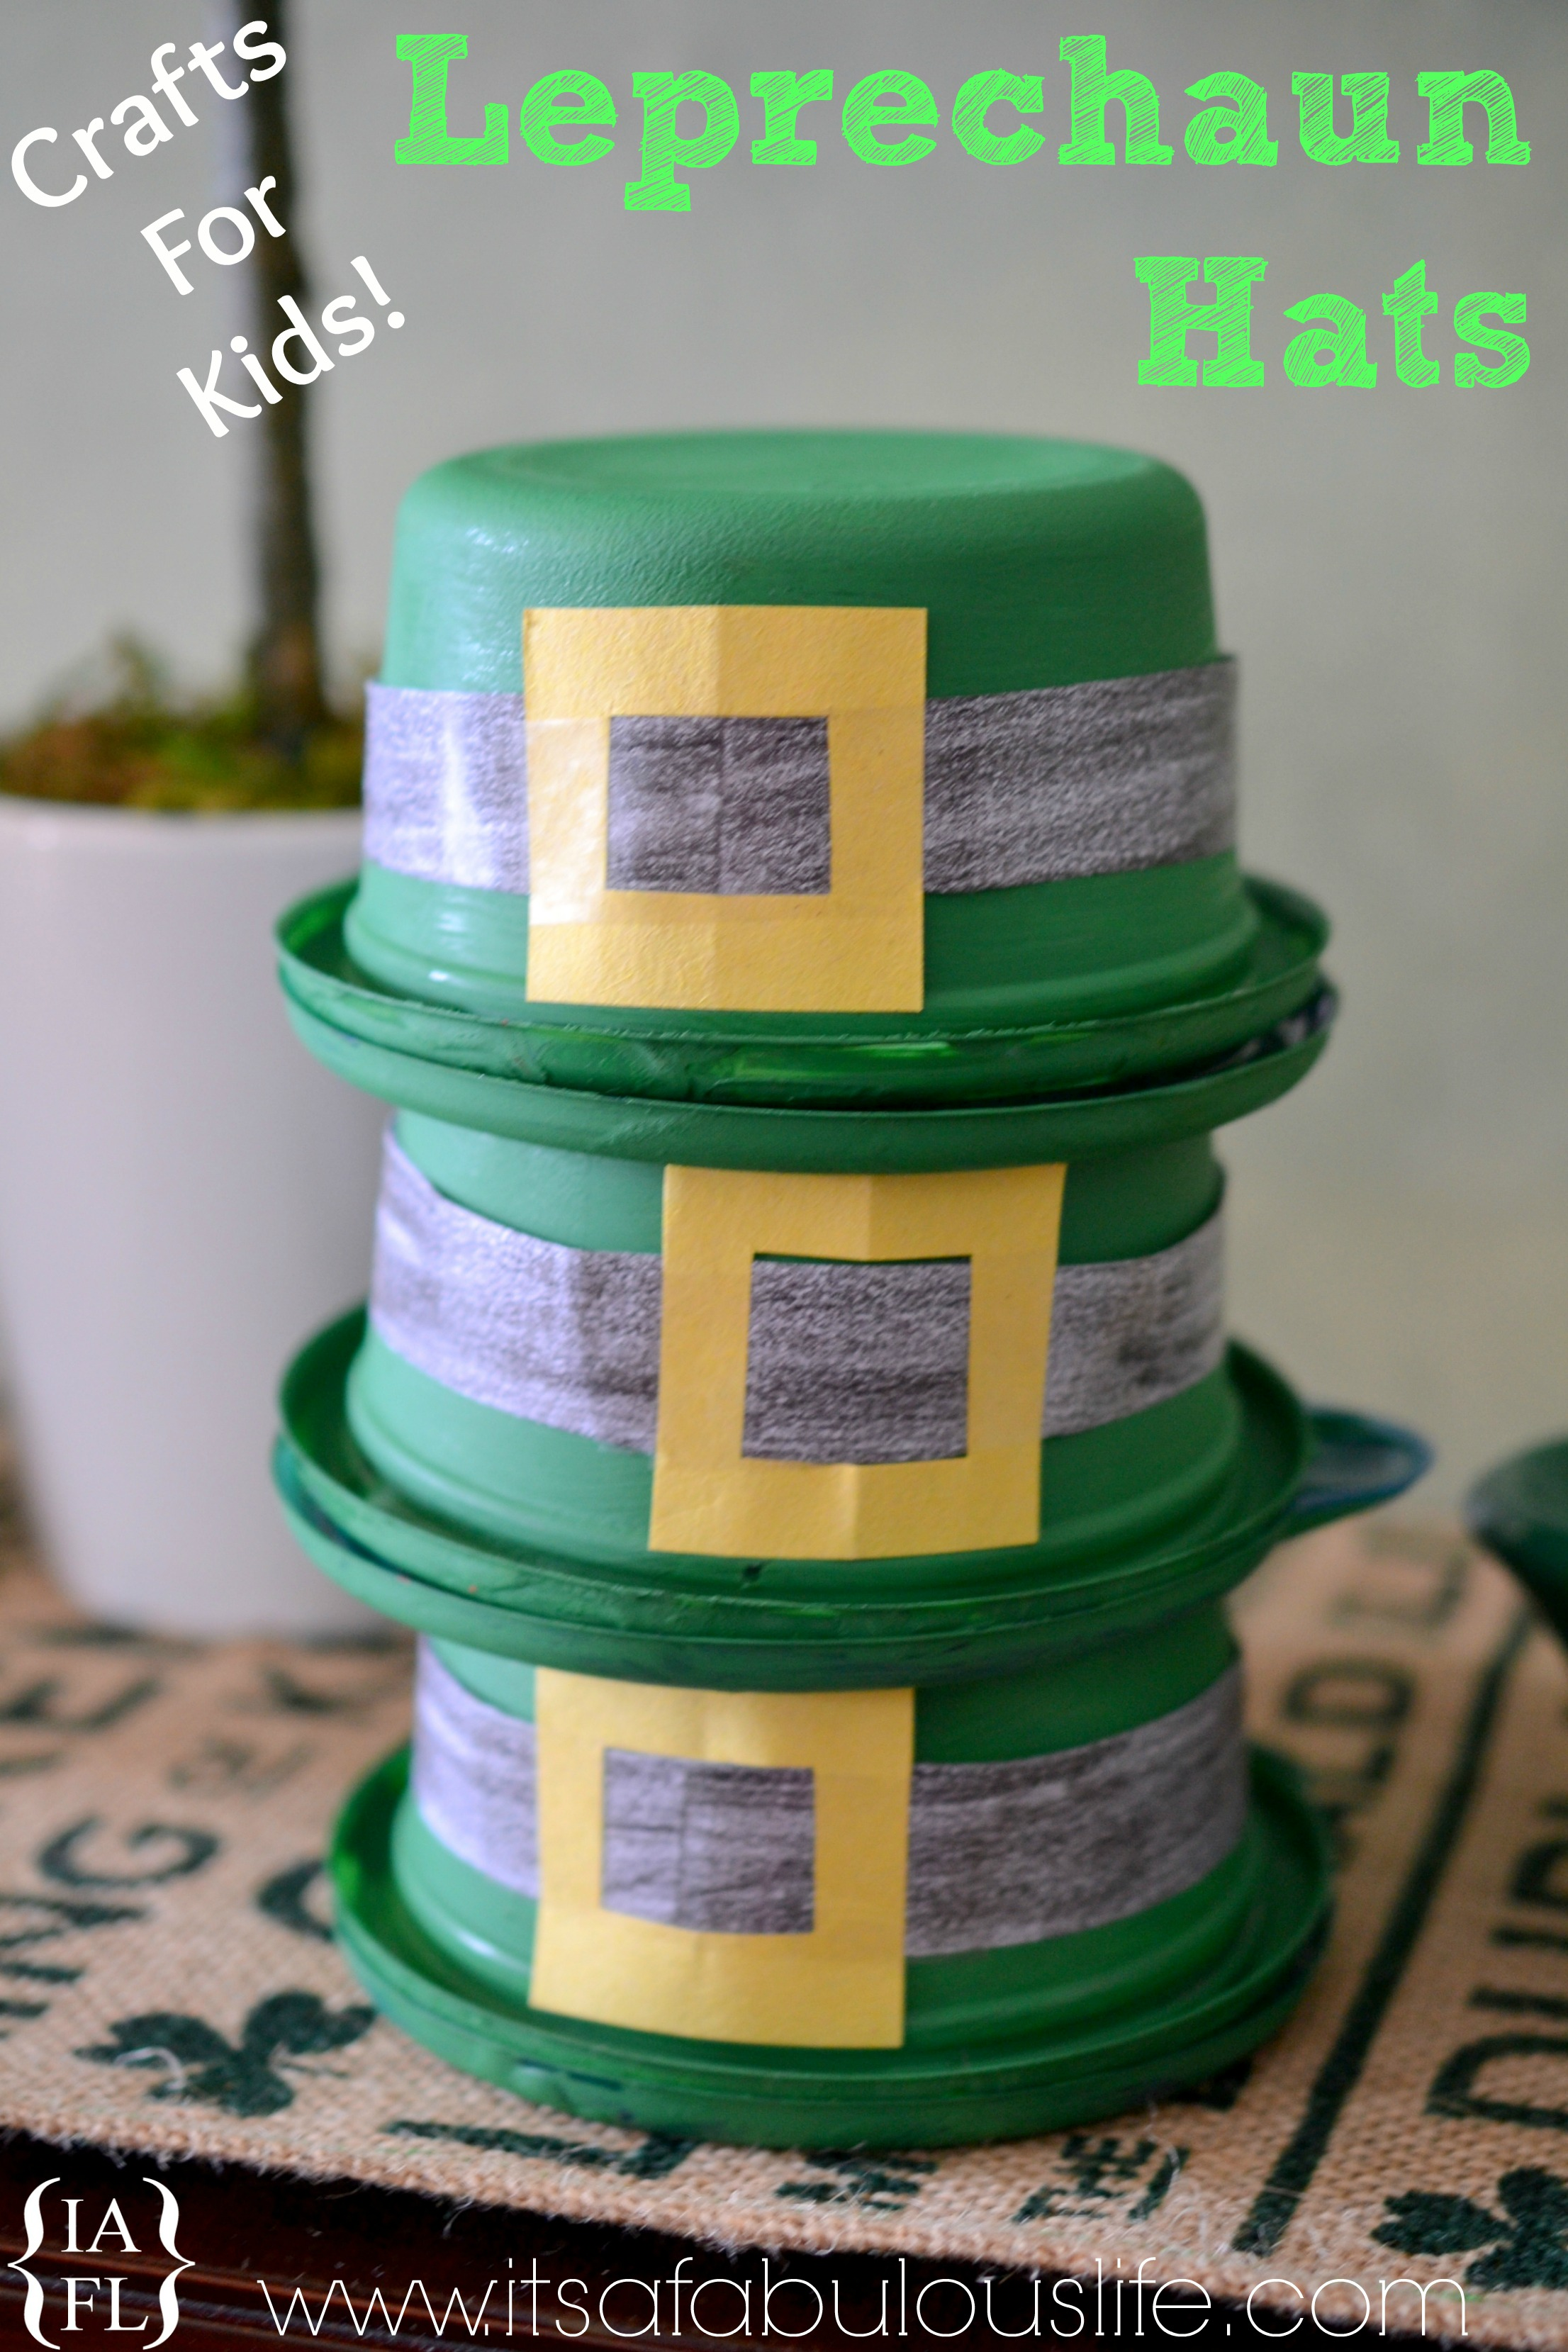 leprechaun-hats-crafts-for-kids